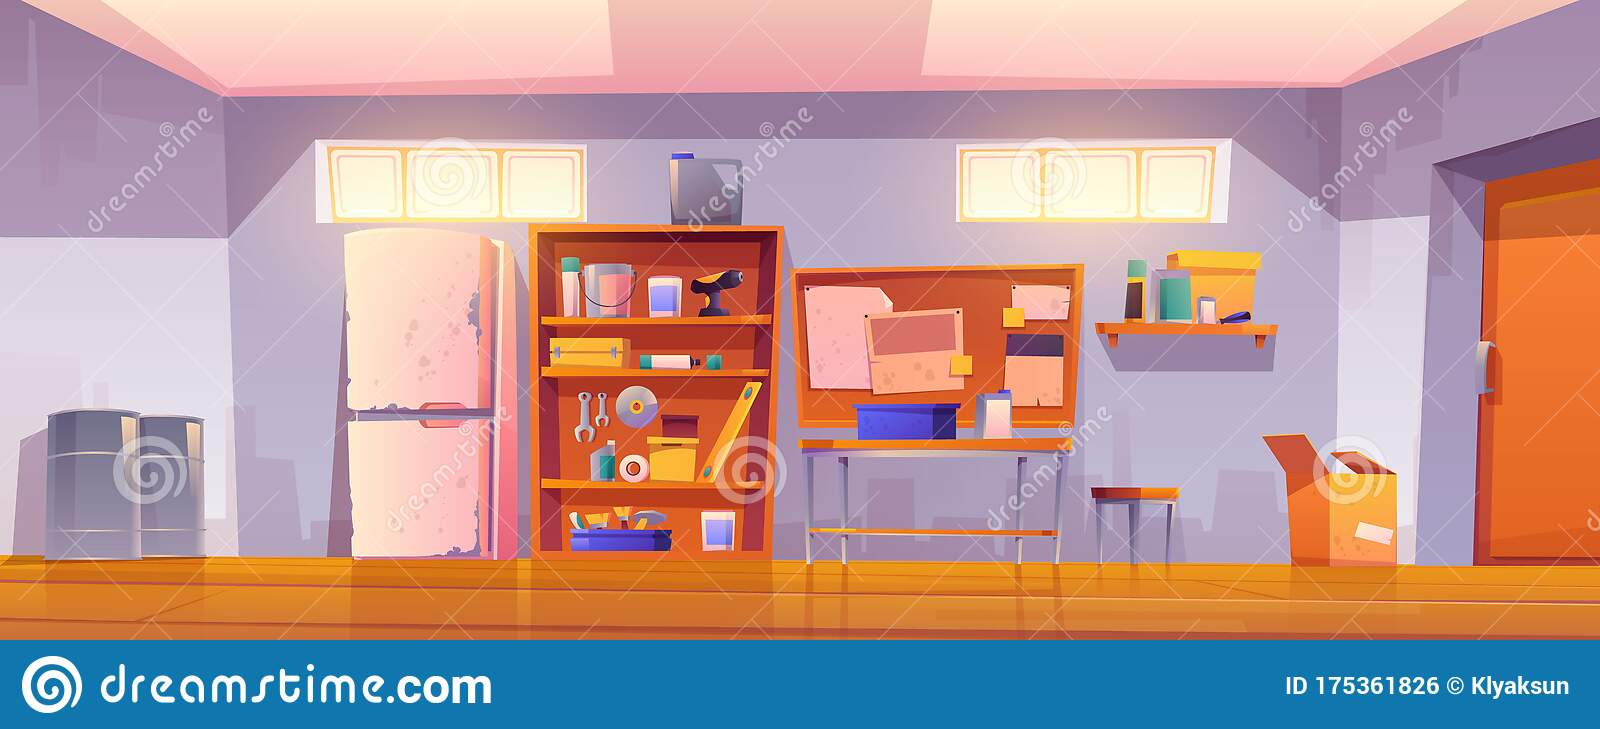 Garage Interior With Tools For Carpentry Works Stock Vector Illustration Of Dirty Furniture 175361826